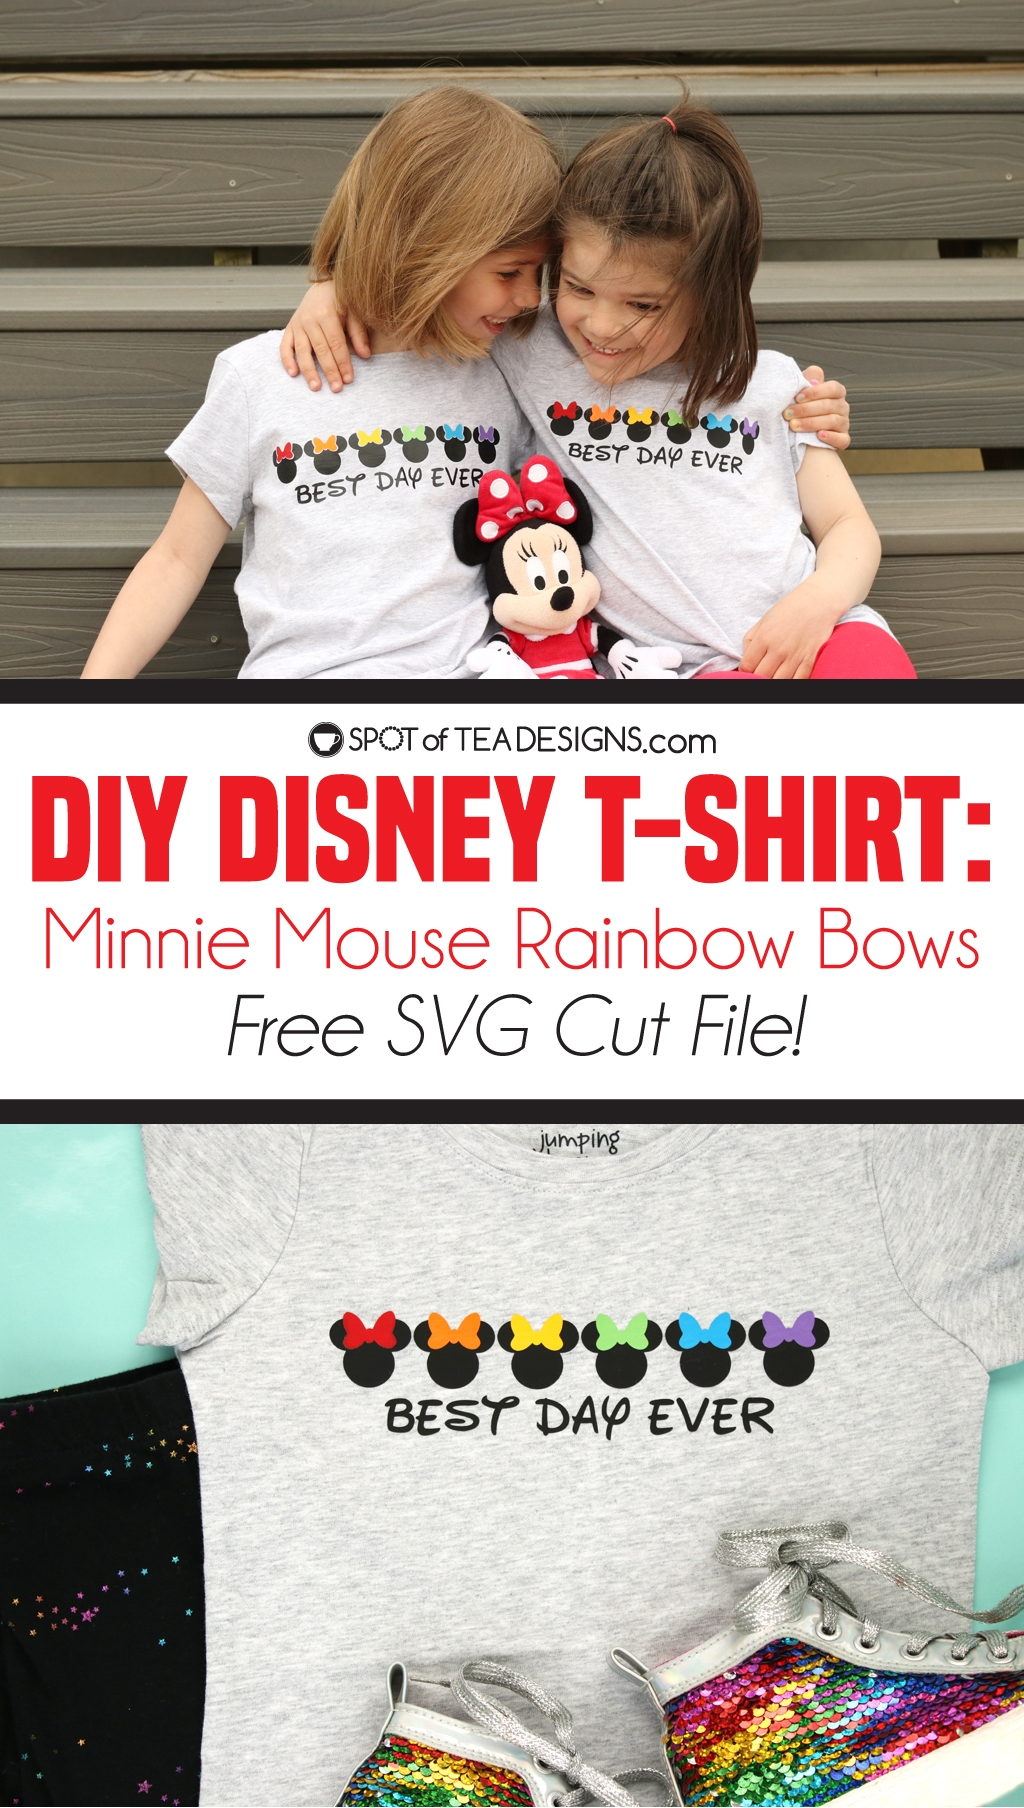 DIY Disney T-shirt - Minnie Mouse Rainbow Bows design, available as a free svg cut file! | spotofteadesigns.com